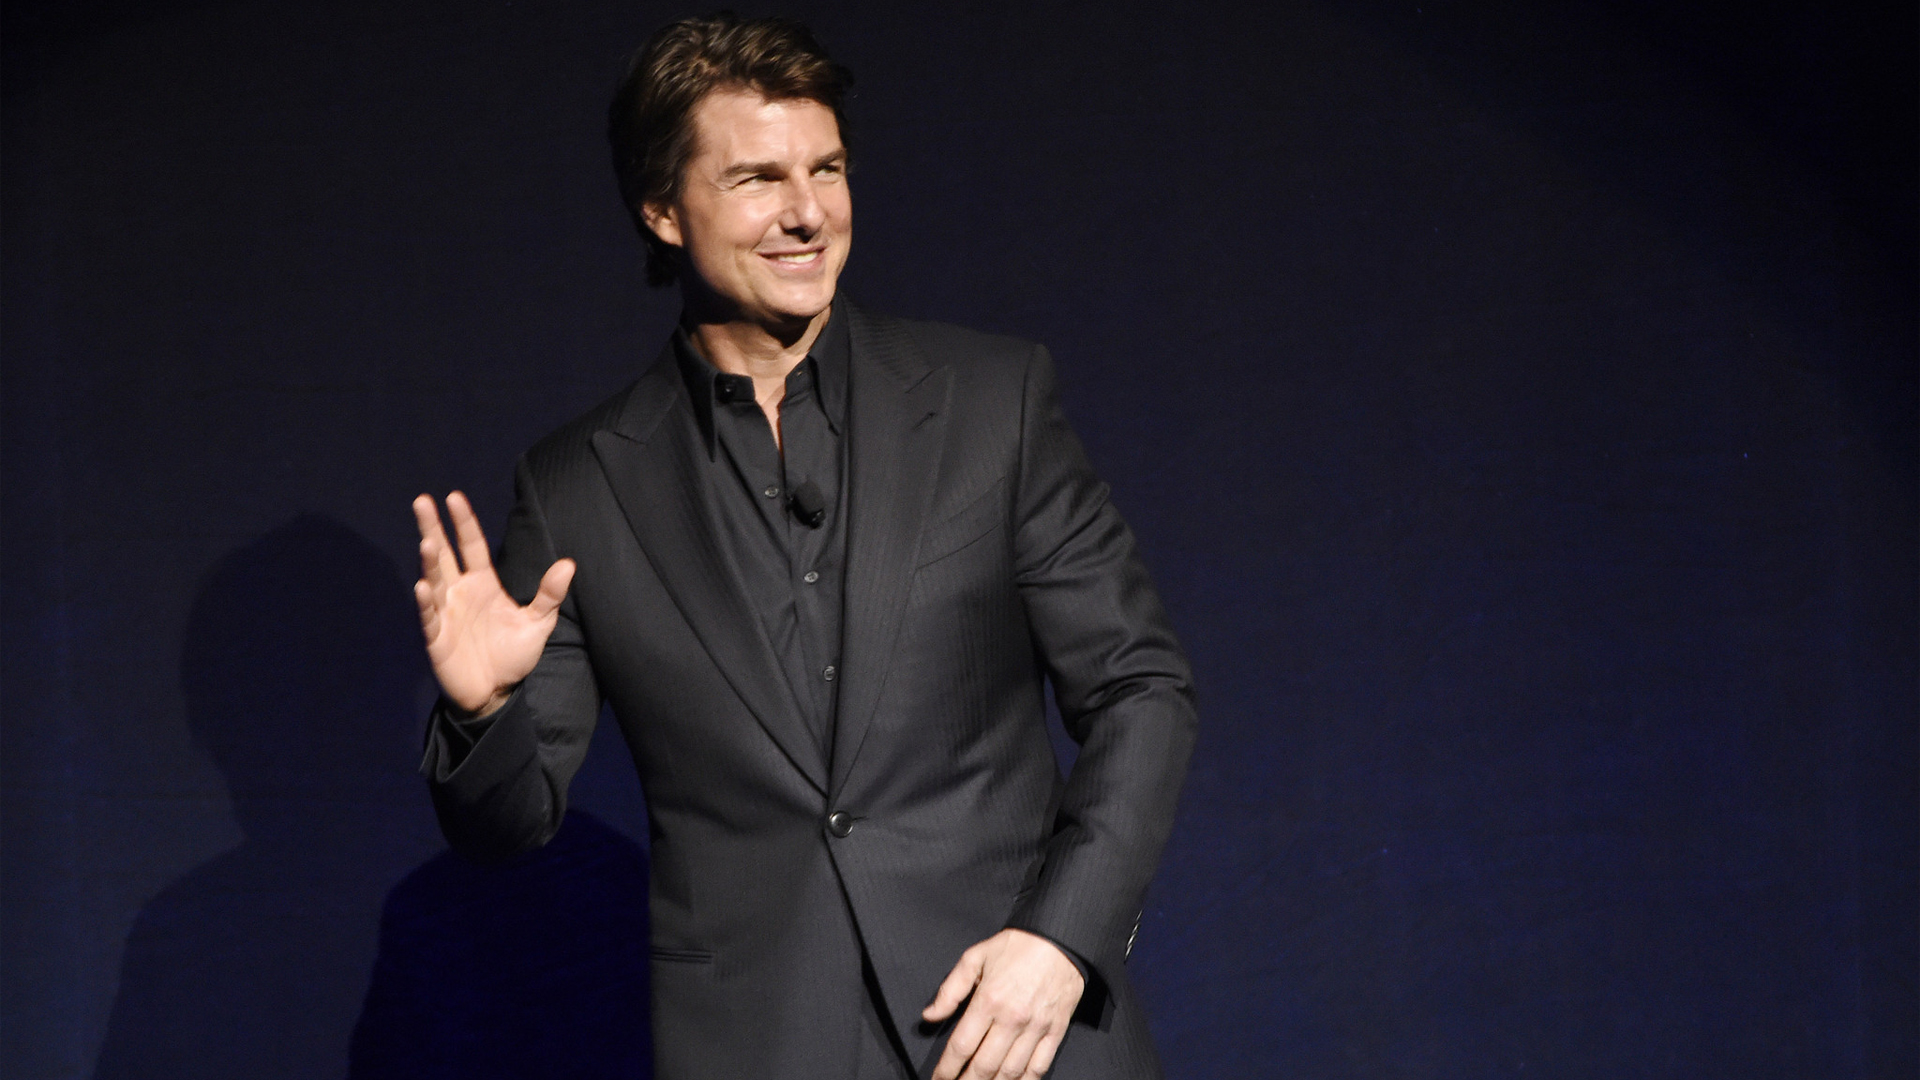 tom cruise wallpapers, photos images in hd 1920x1080